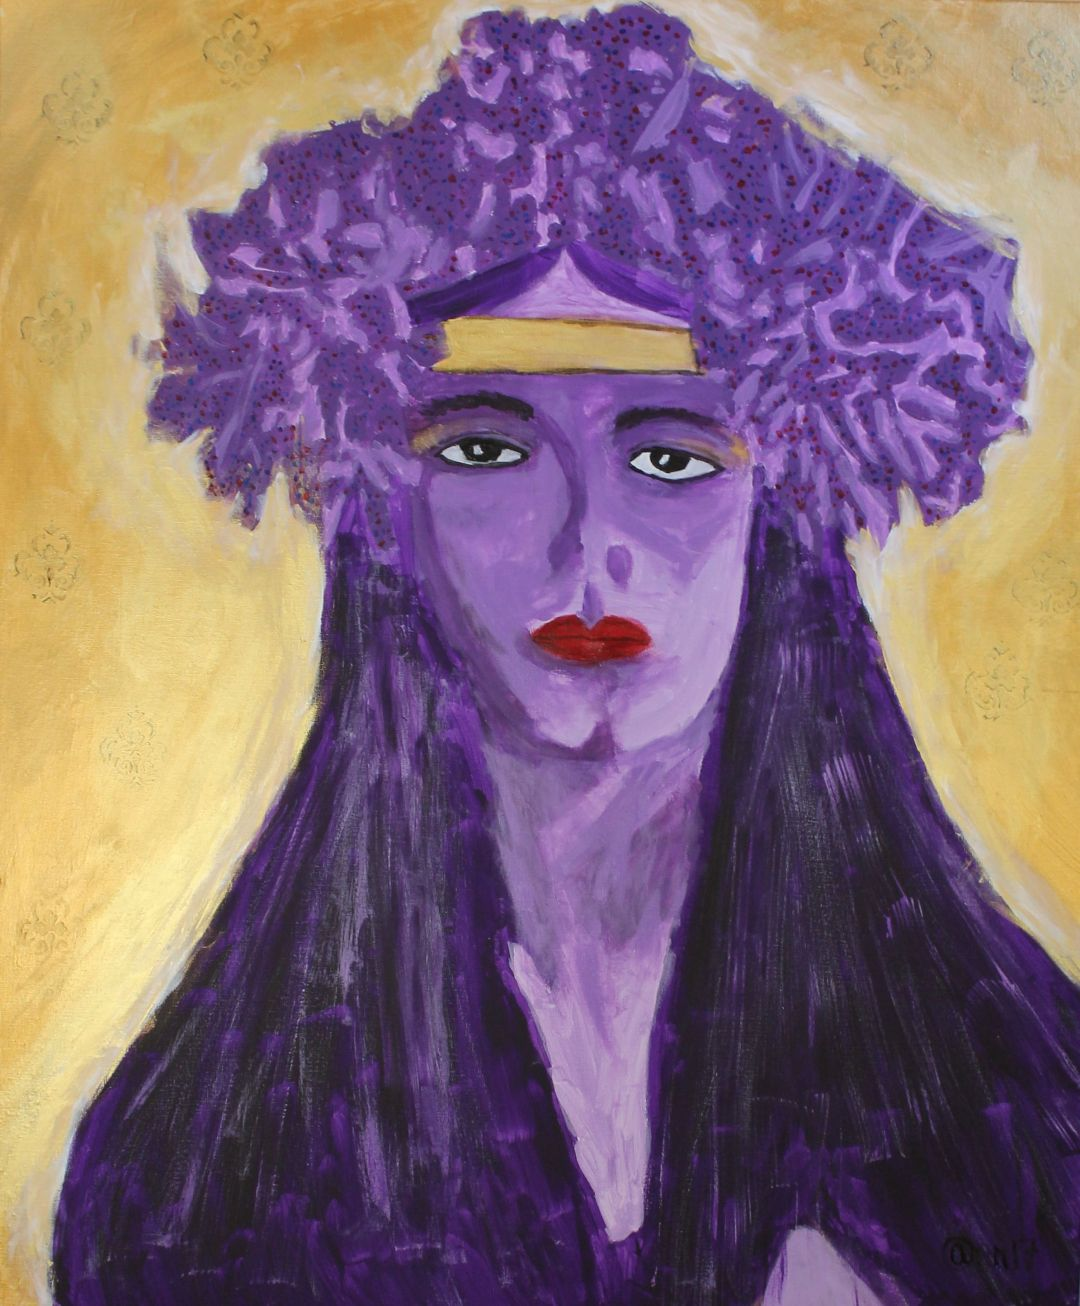 Evelyn Crowned, acrylic paintings by Audra Arr